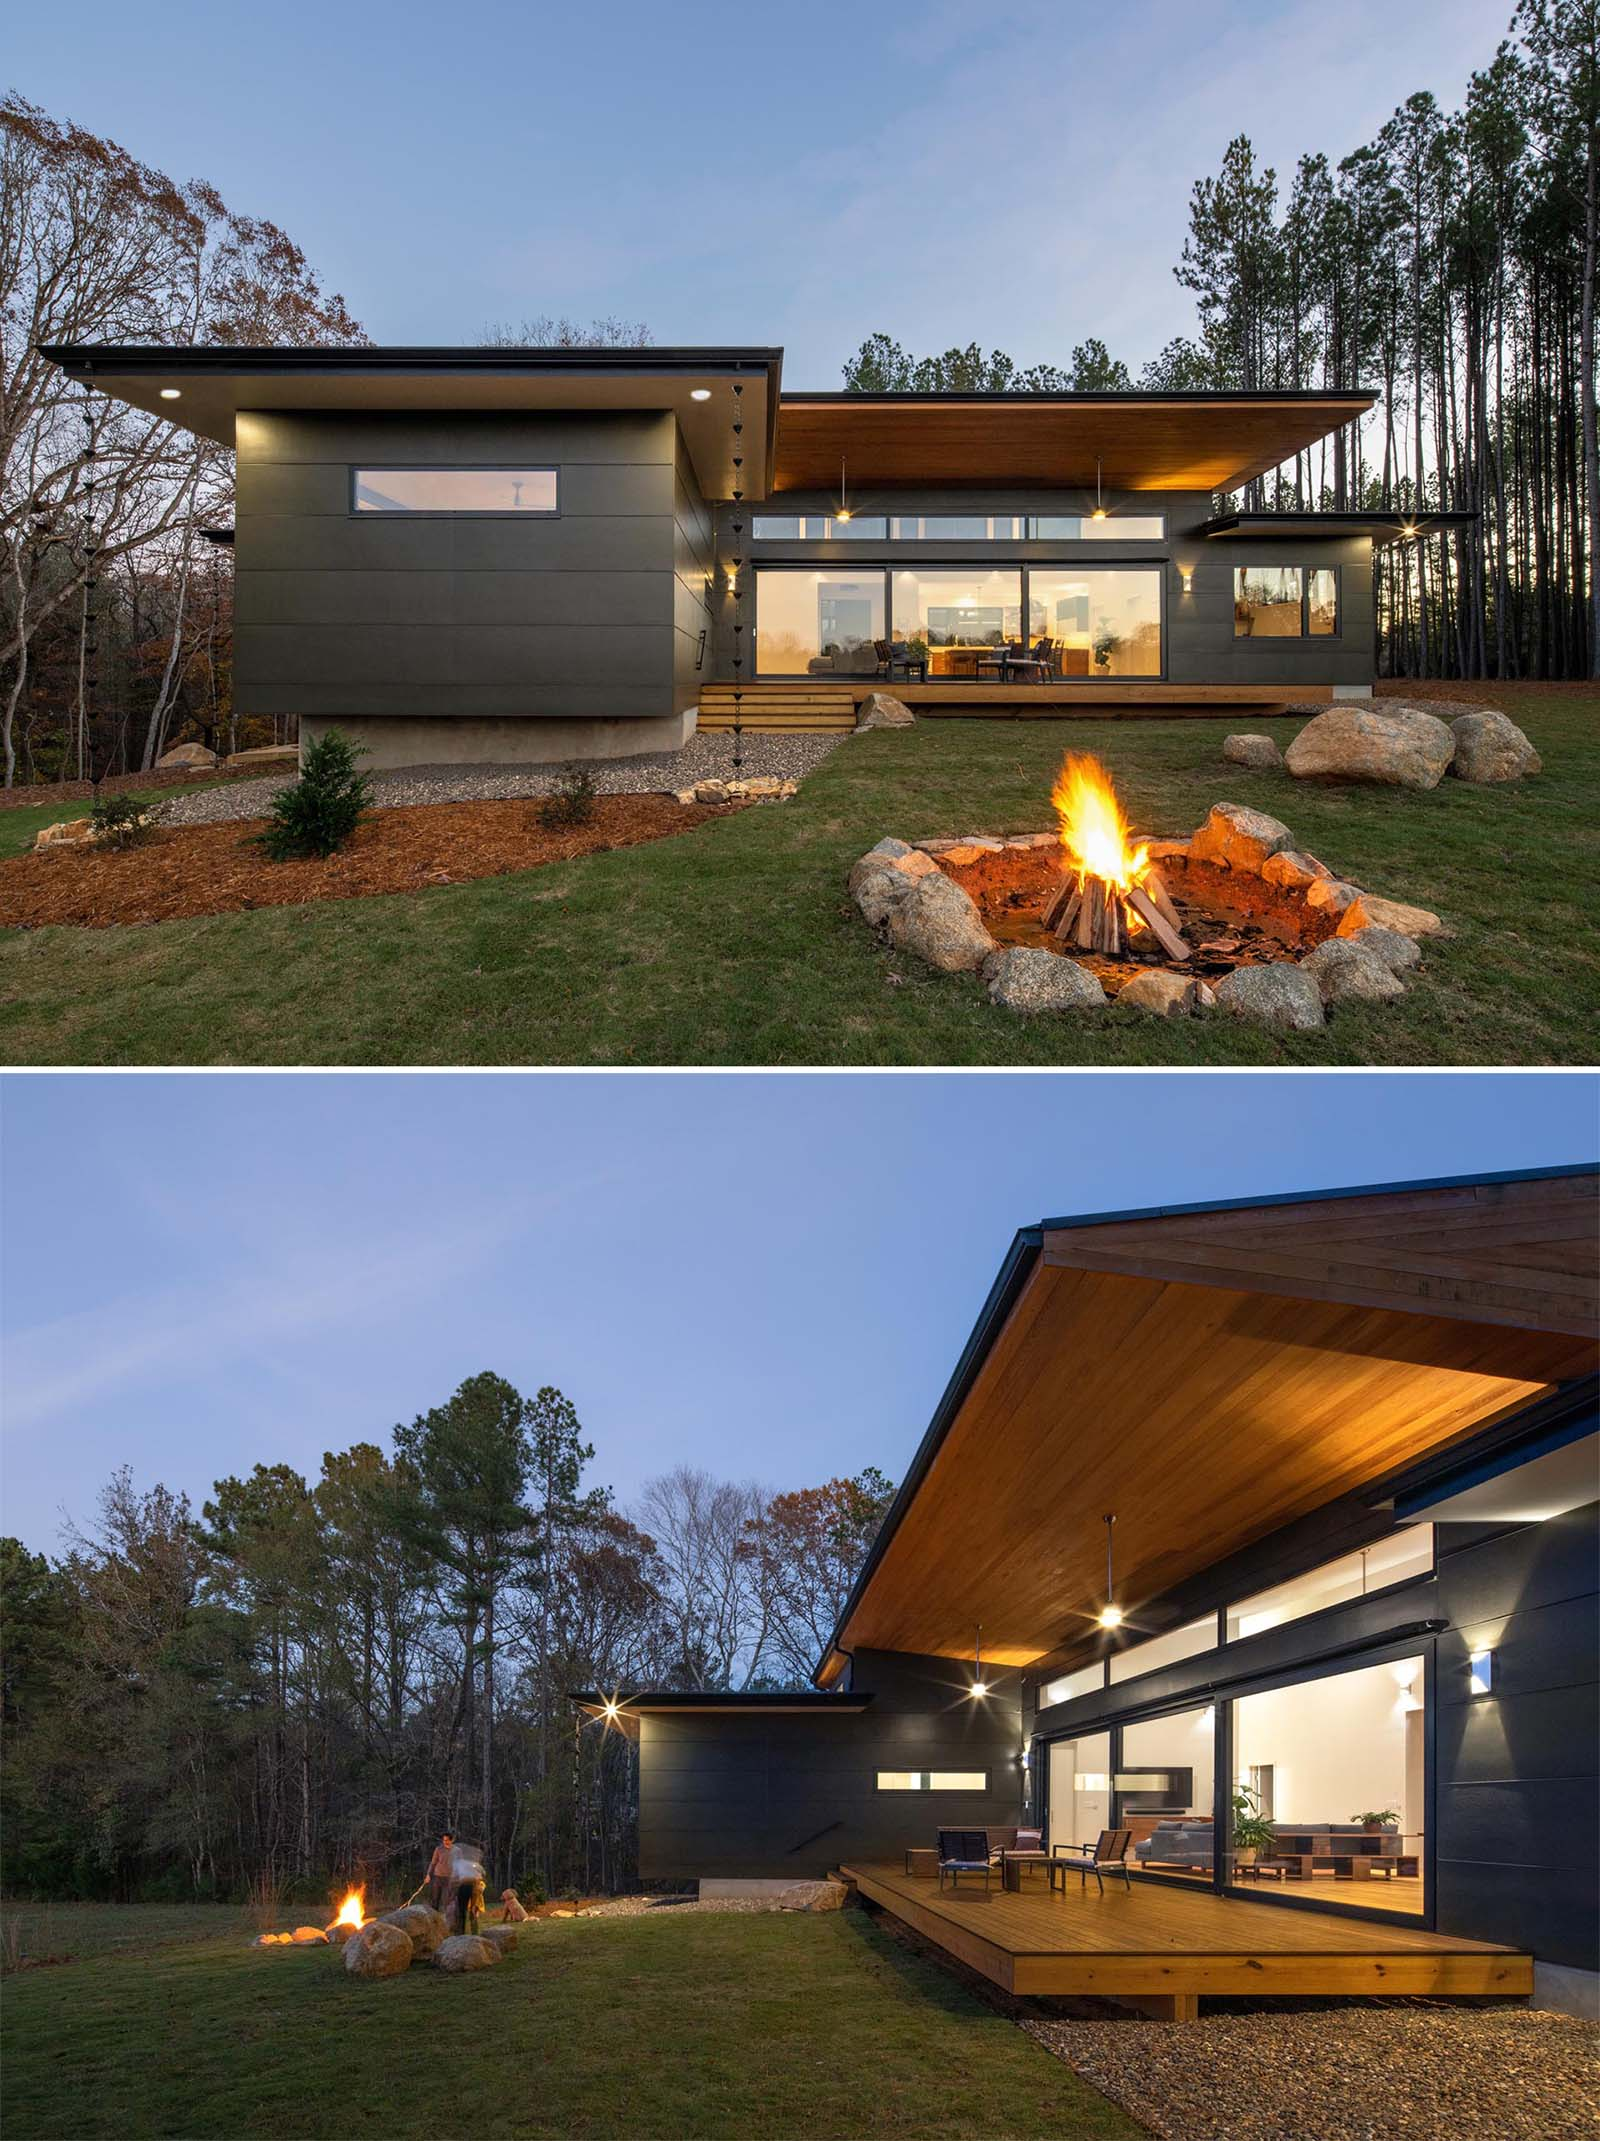 At the rear of this single story modern home, there's a a fire pit for relaxing and enjoying the meadow views, and a covered deck with outdoor fans.